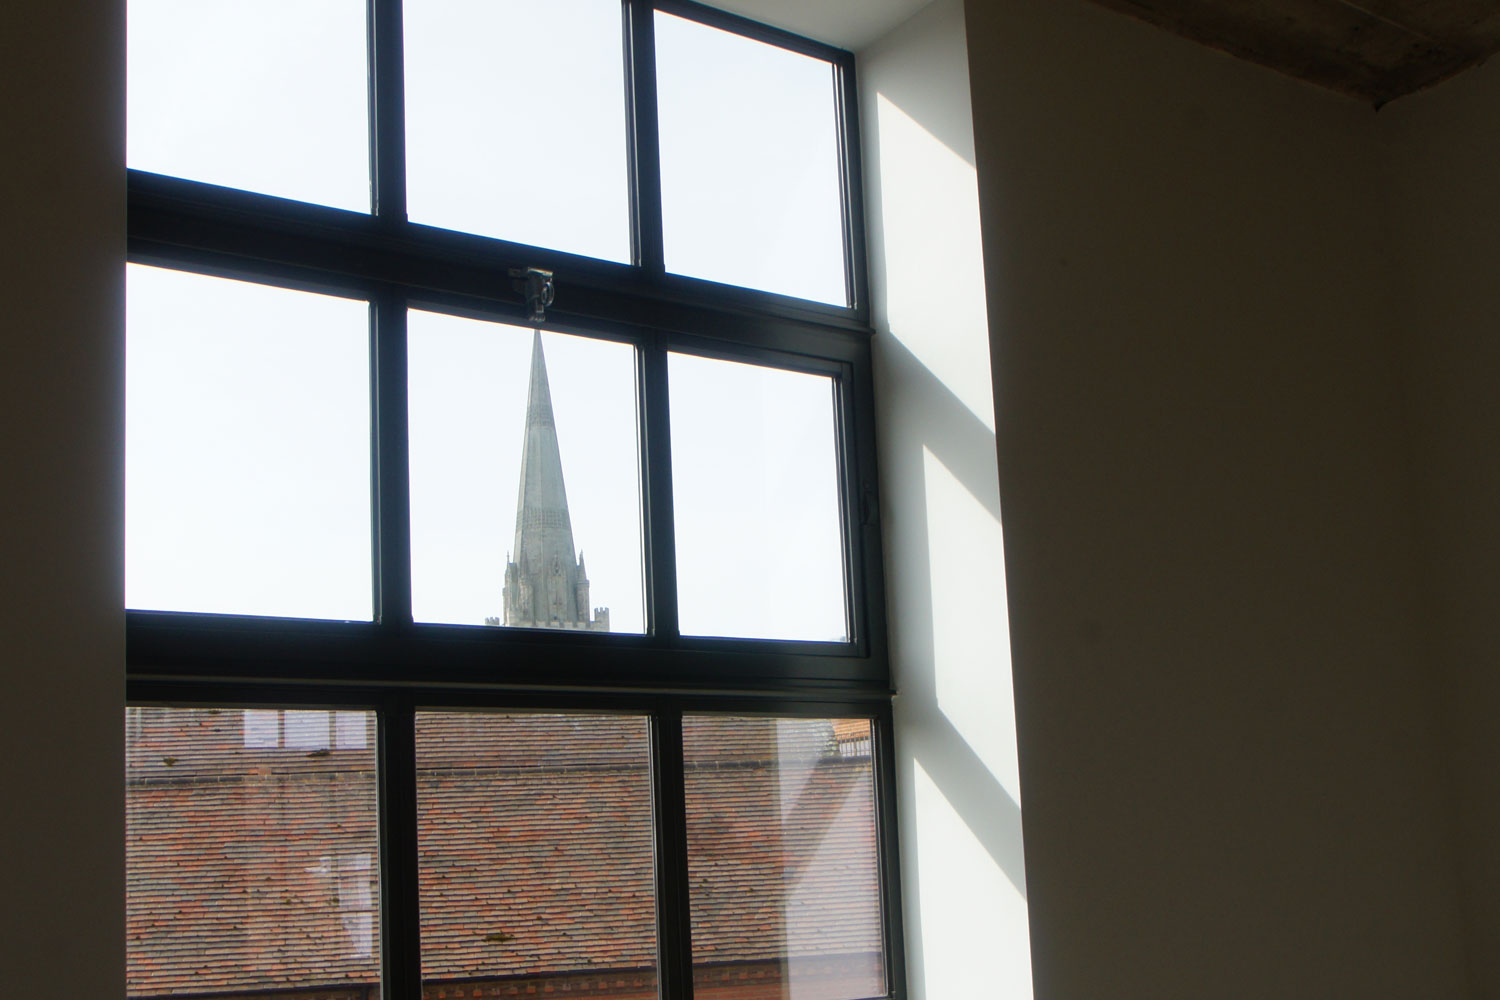 First floor window lookout to spire